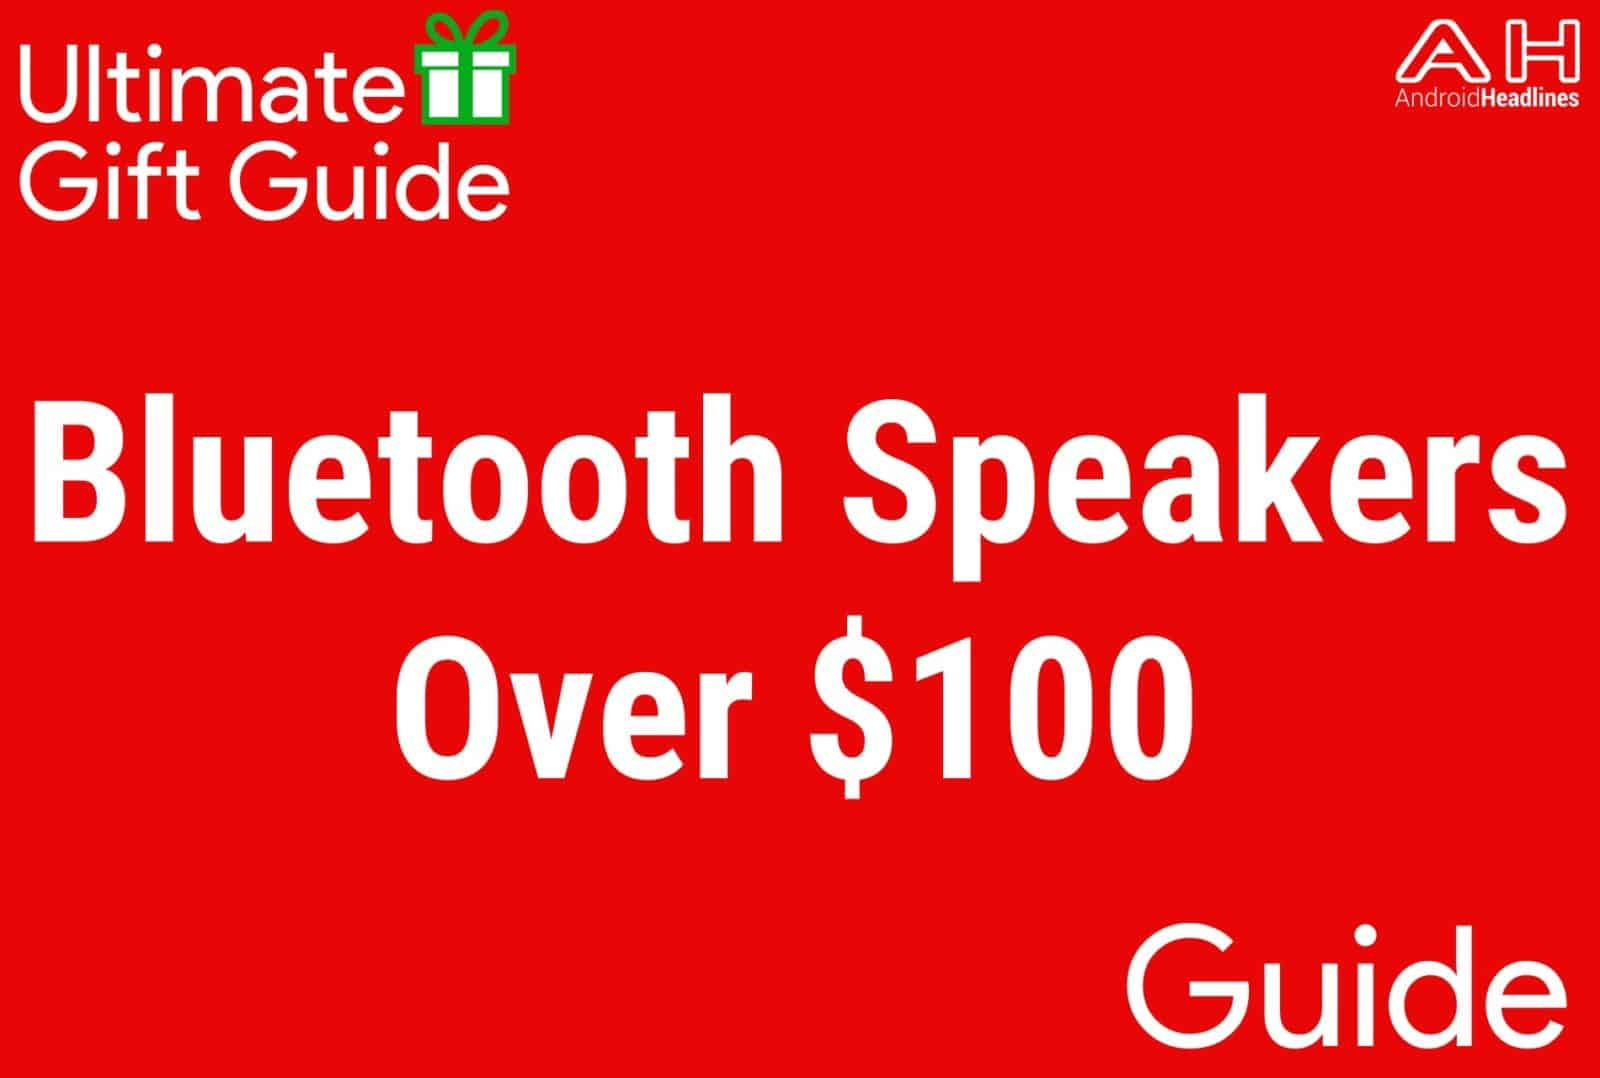 Bluetooth Speakers Over $100 - Gift Guide 2015